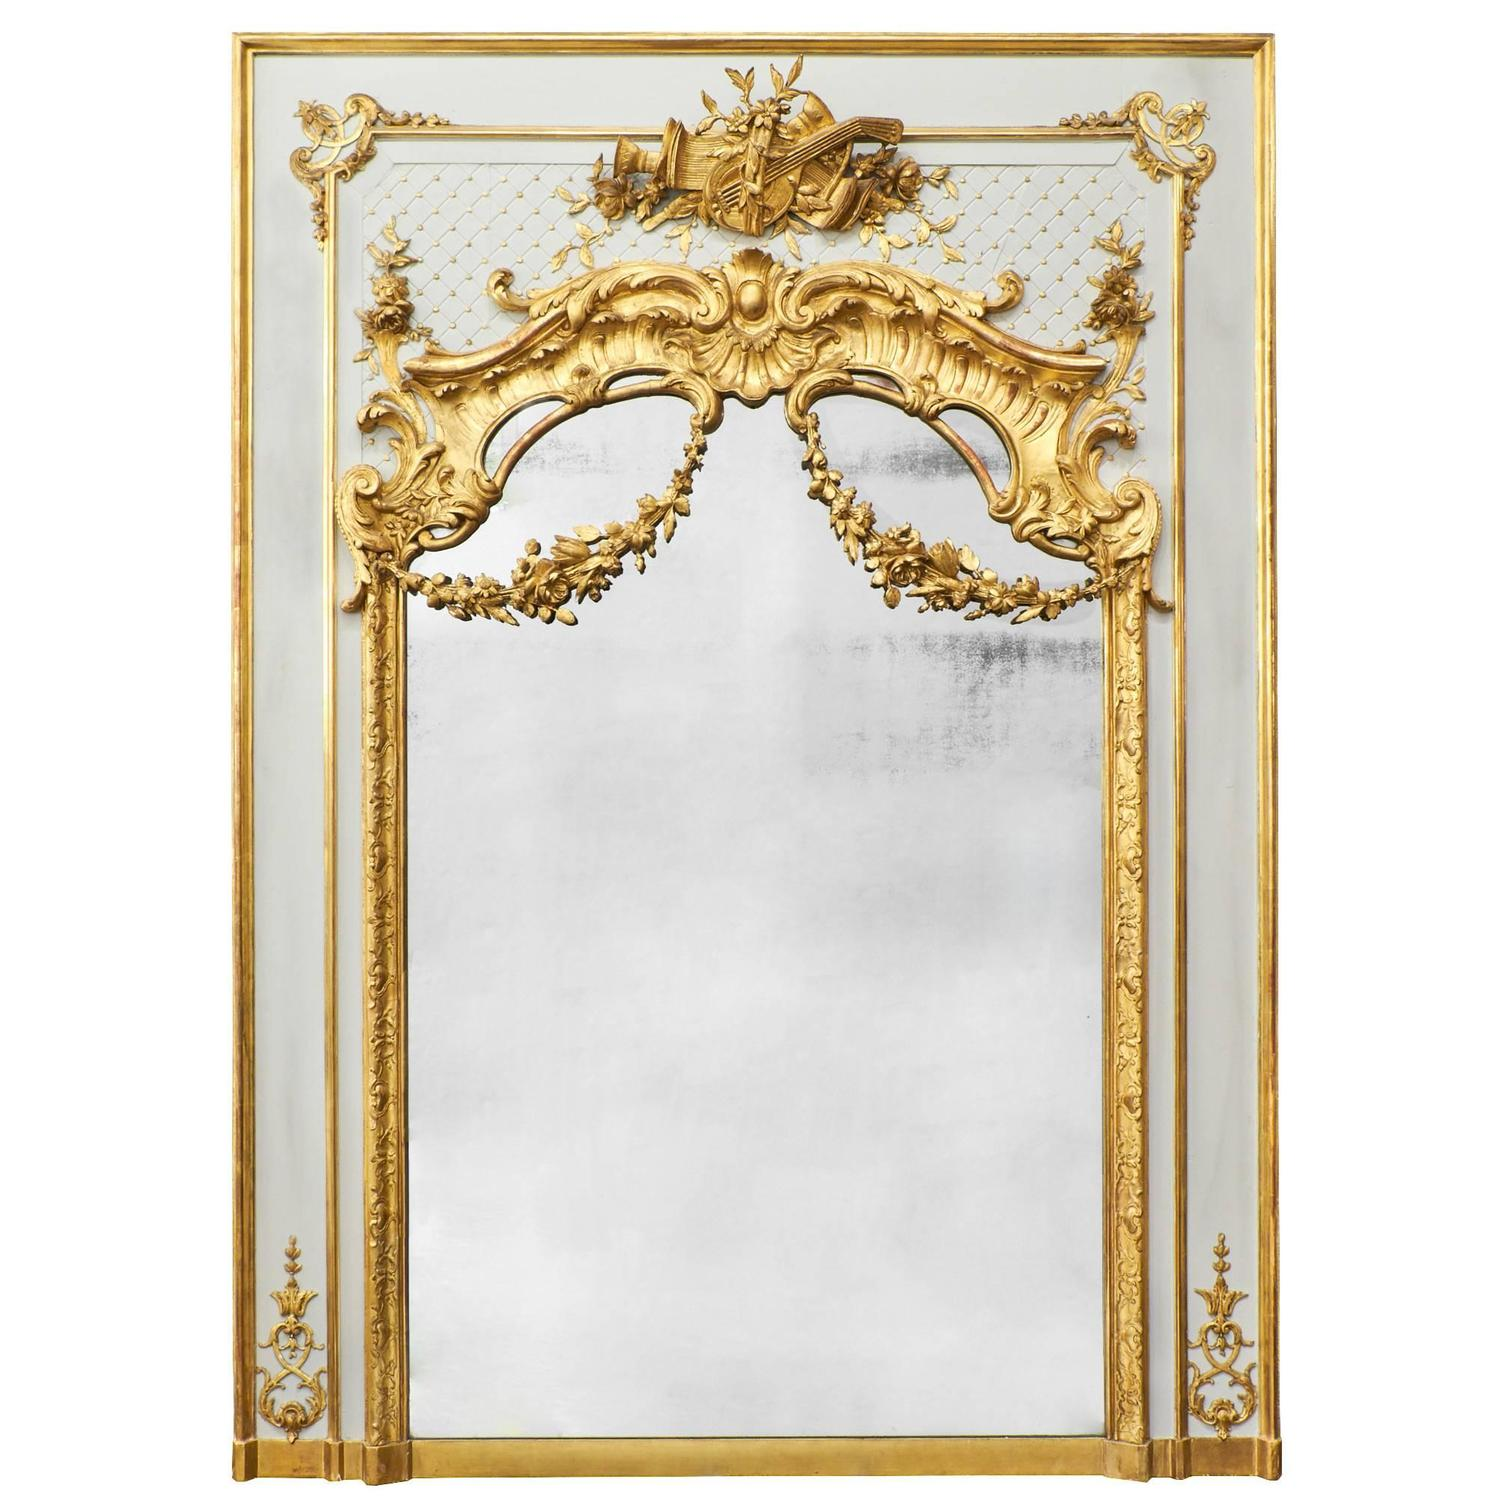 antique gold mirror french Antique French, Louis XVI Gold Leaf Trumeau For Sale at 1stdibs antique gold mirror french